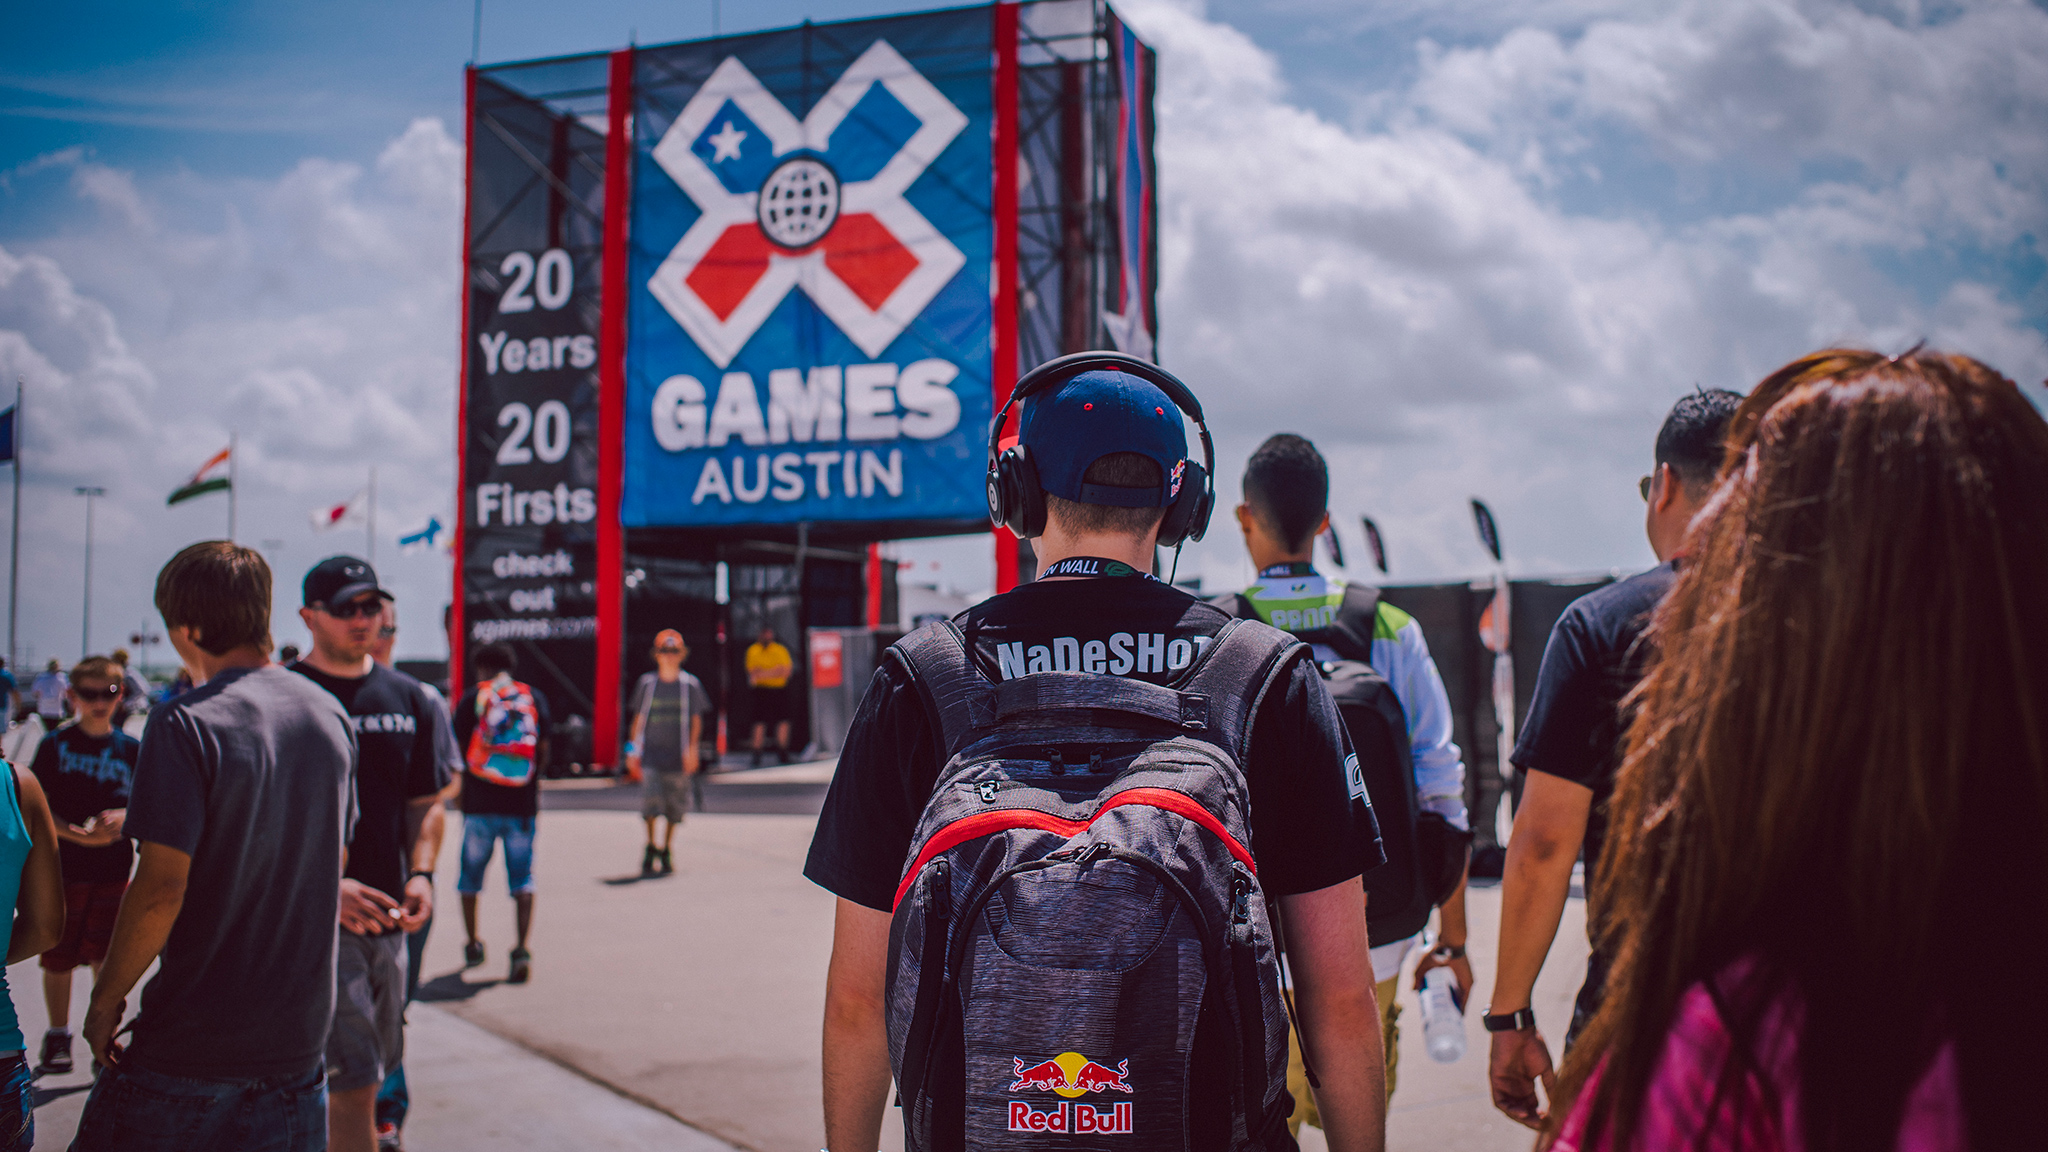 MLG at X Games